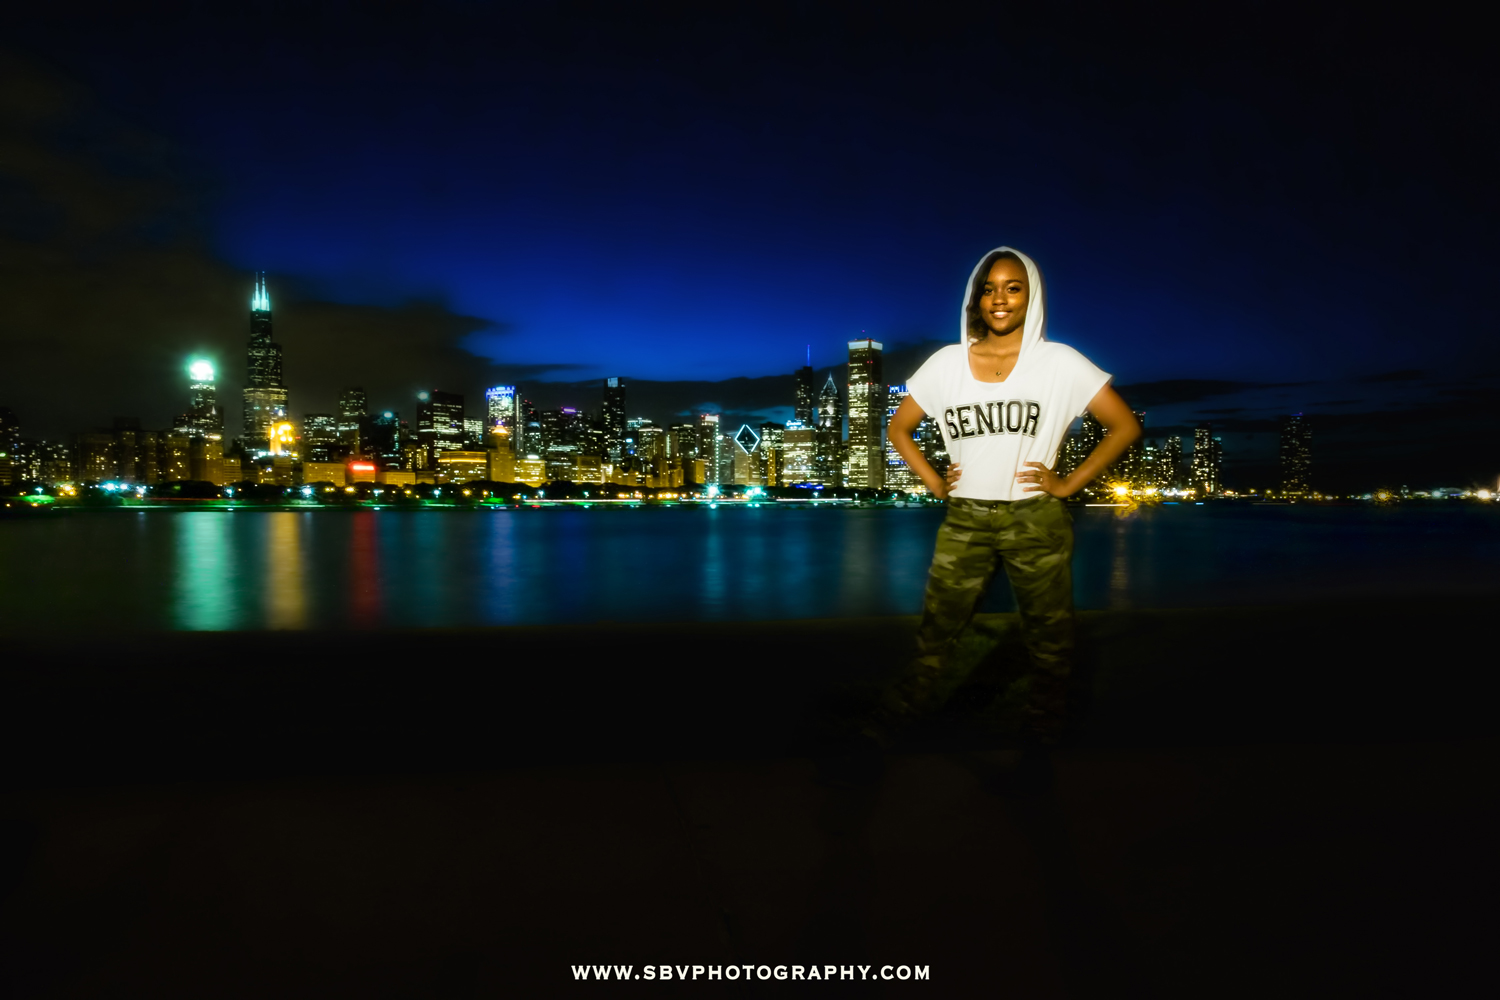 A 2015 high school senior poses in front of the Chicago Skyline at night.